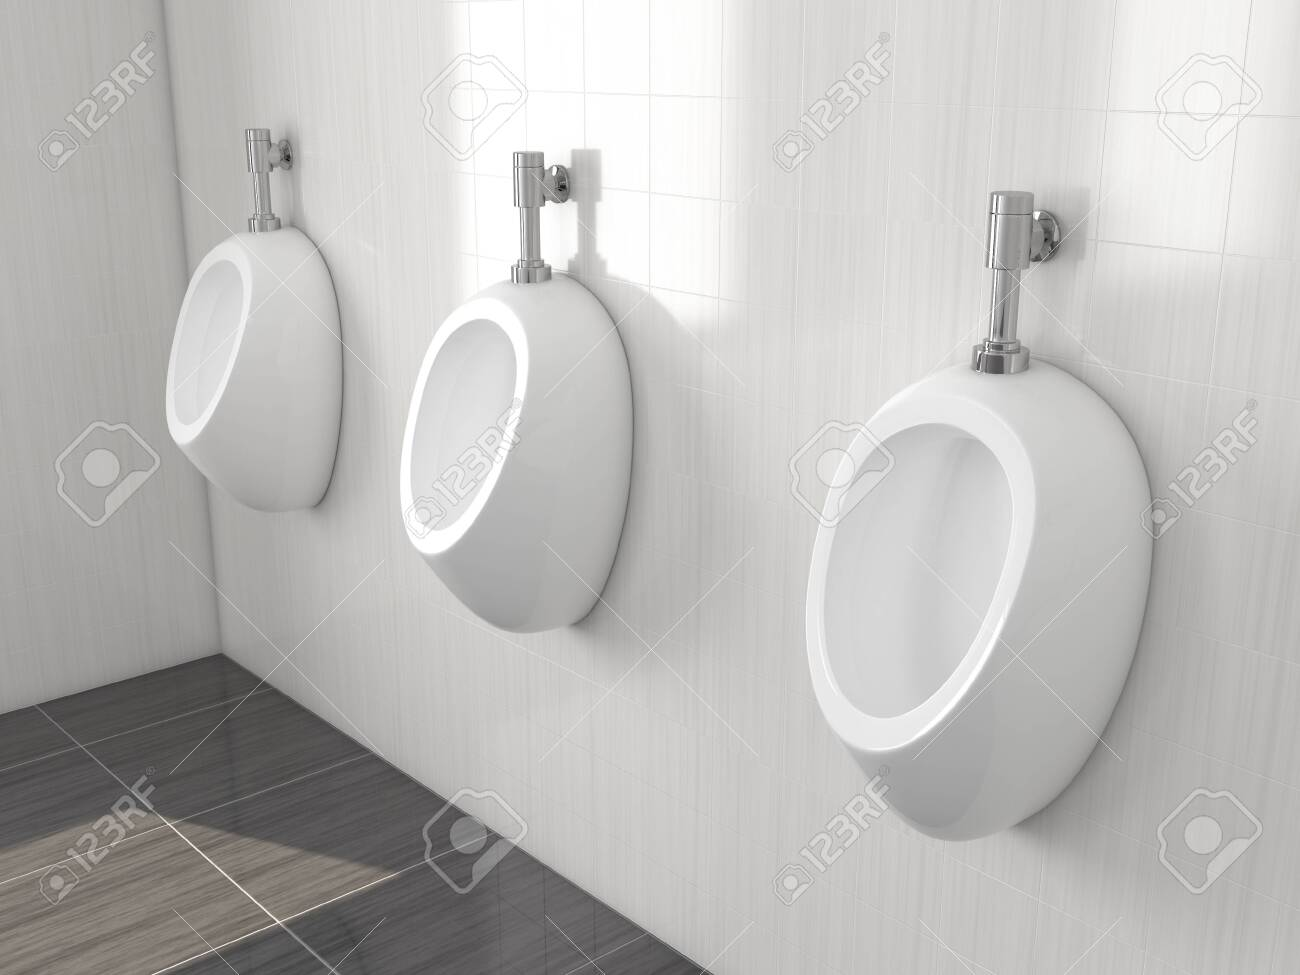 White urinals in men public toilet. Modern ceramic urinals hanging on the tiled wall. 3d rendering illustration. - 150521347